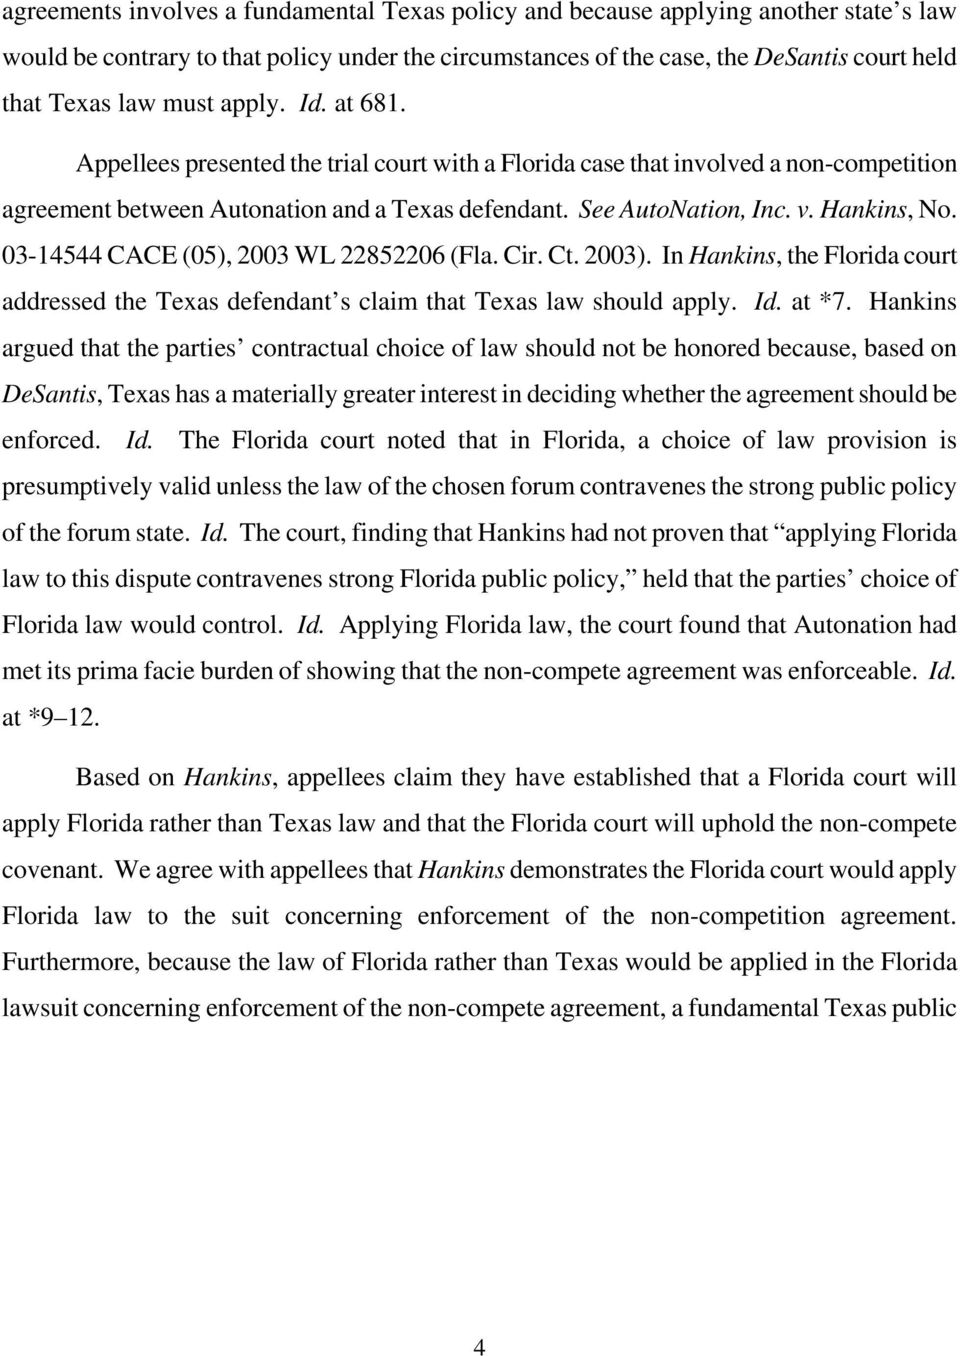 03-14544 CACE (05), 2003 WL 22852206 (Fla. Cir. Ct. 2003). In Hankins, the Florida court addressed the Texas defendant s claim that Texas law should apply. Id. at *7.